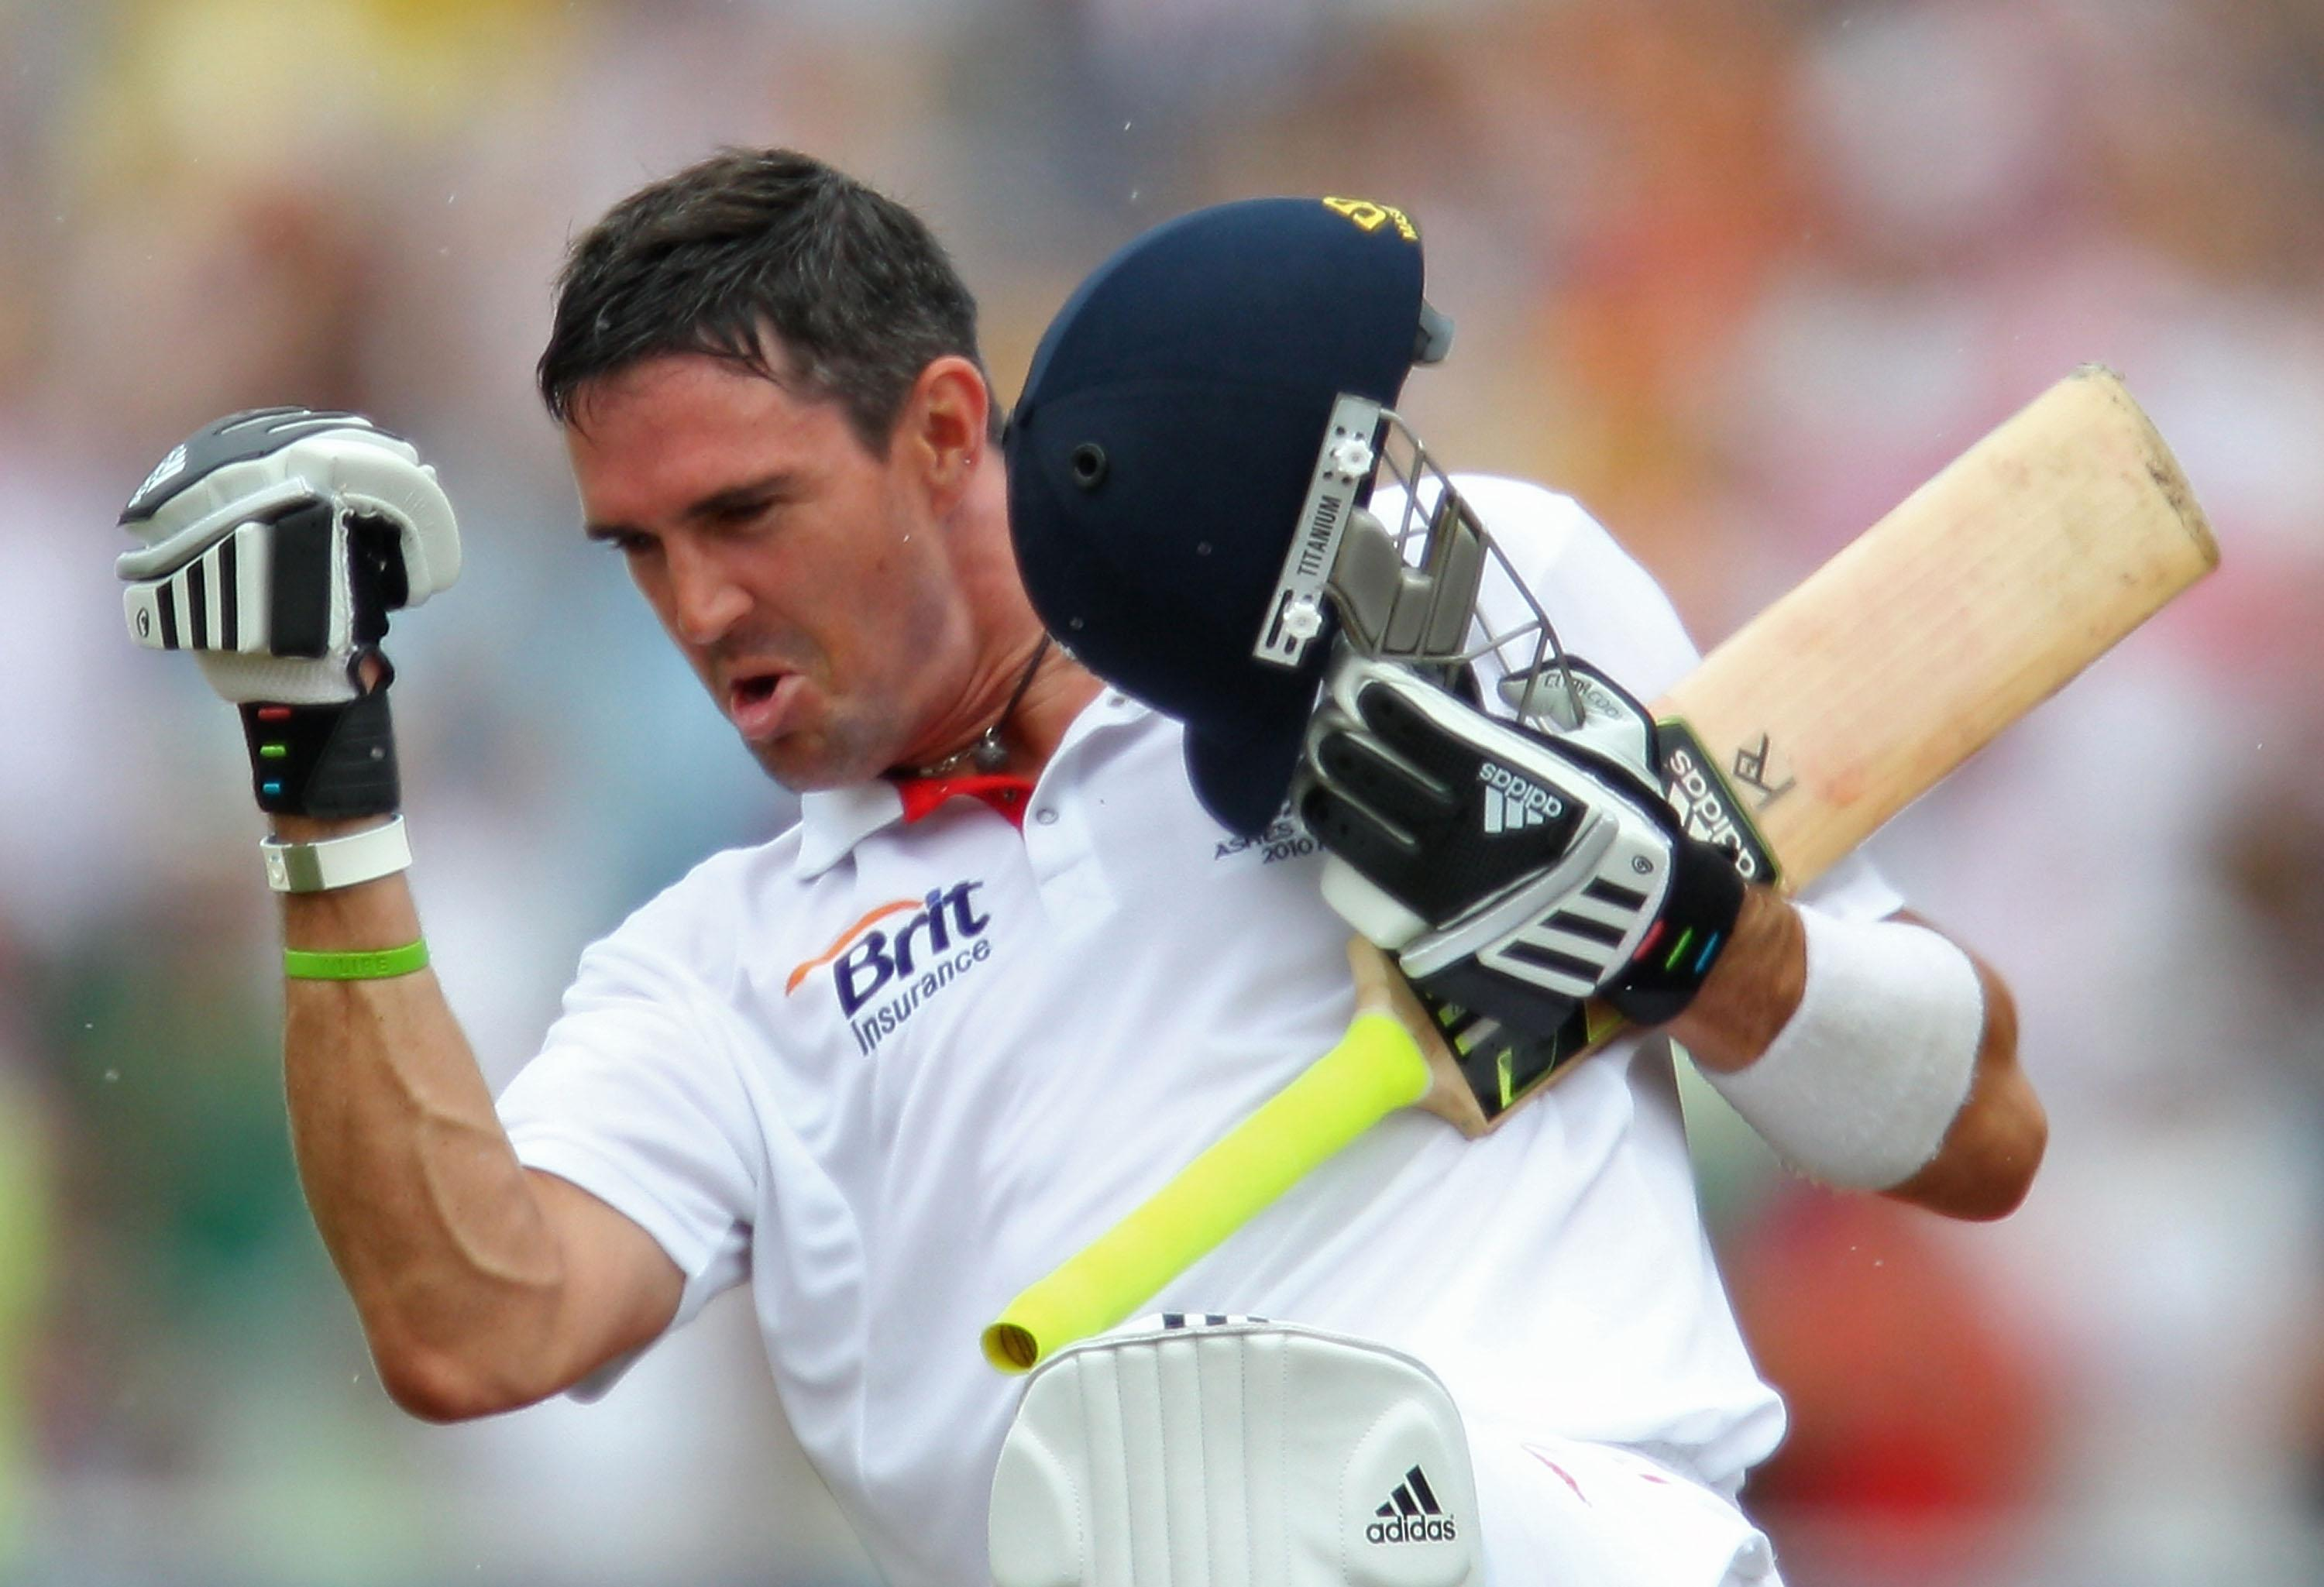 Kevin Pietersen has retired from cricket aged 37 after a 20-year career